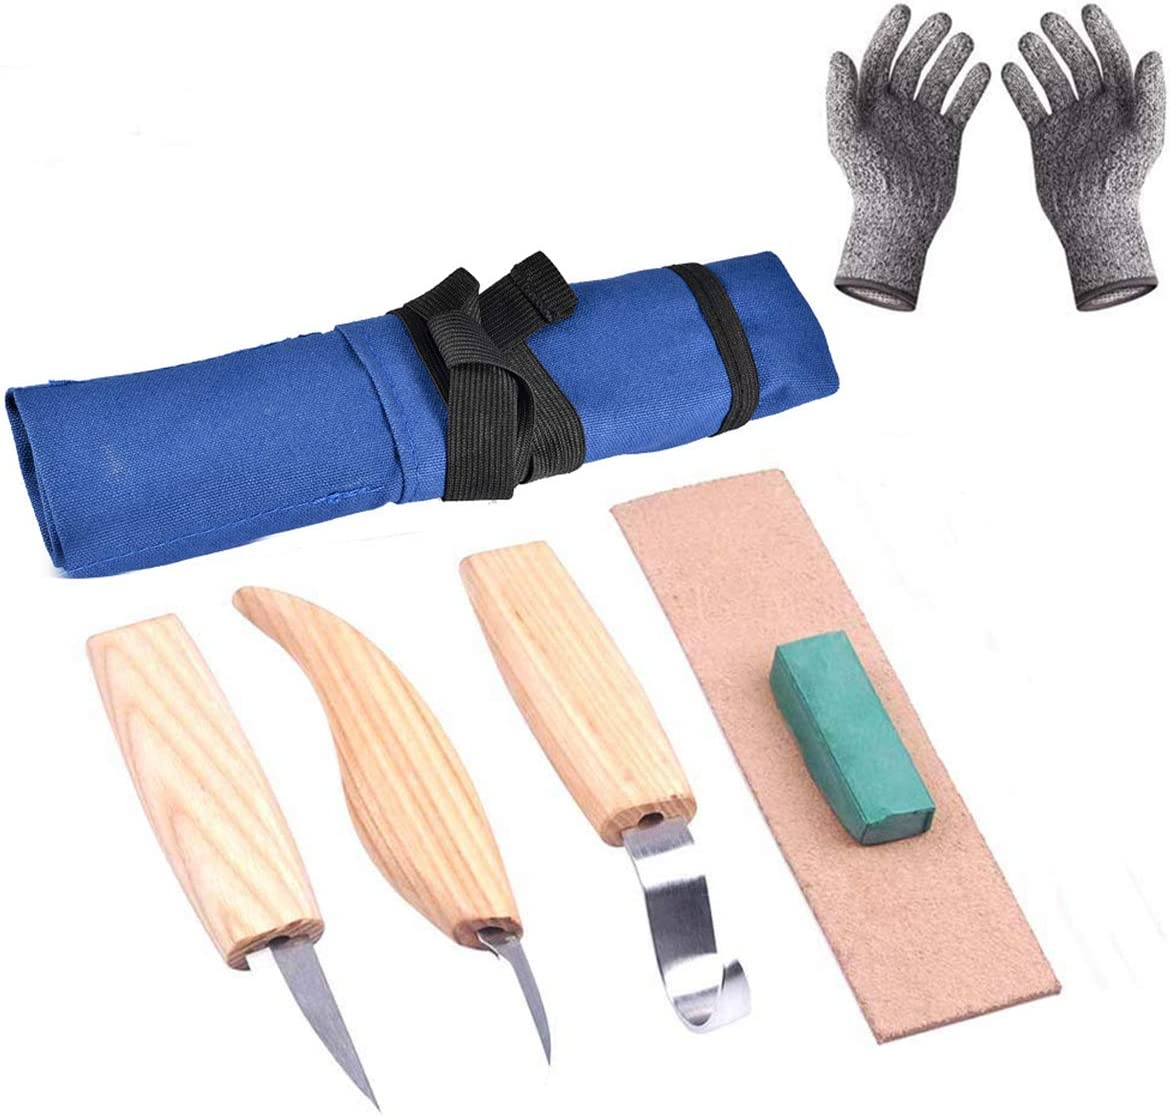 tabpole Ranking TOP17 Max 61% OFF 6 in 1 Woodcarving Tool Hook Knife Paring Shar Set